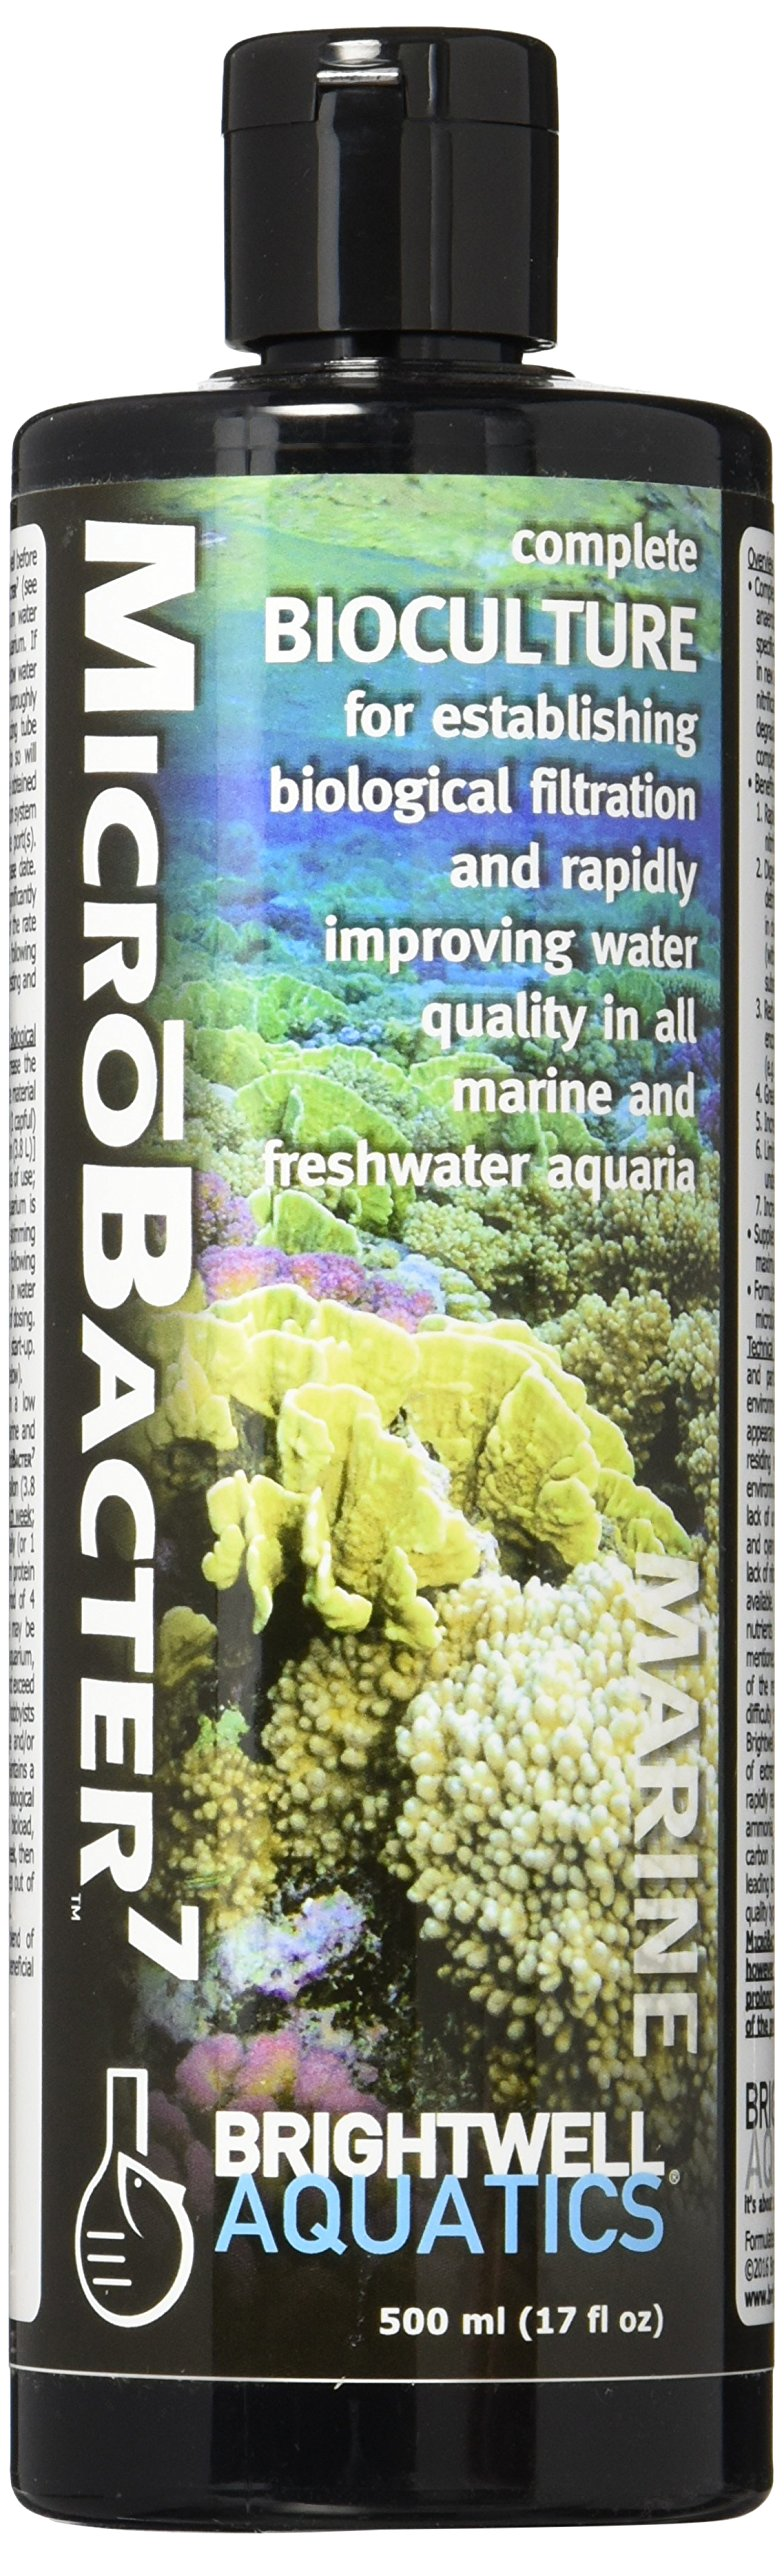 Brightwell Aquatics MicroBacter7 - Bacteria & Water Conditioner for Fish Tank or Aquarium, Populates Biological Filter Media for Saltwater and Freshwater Fish, 500ml